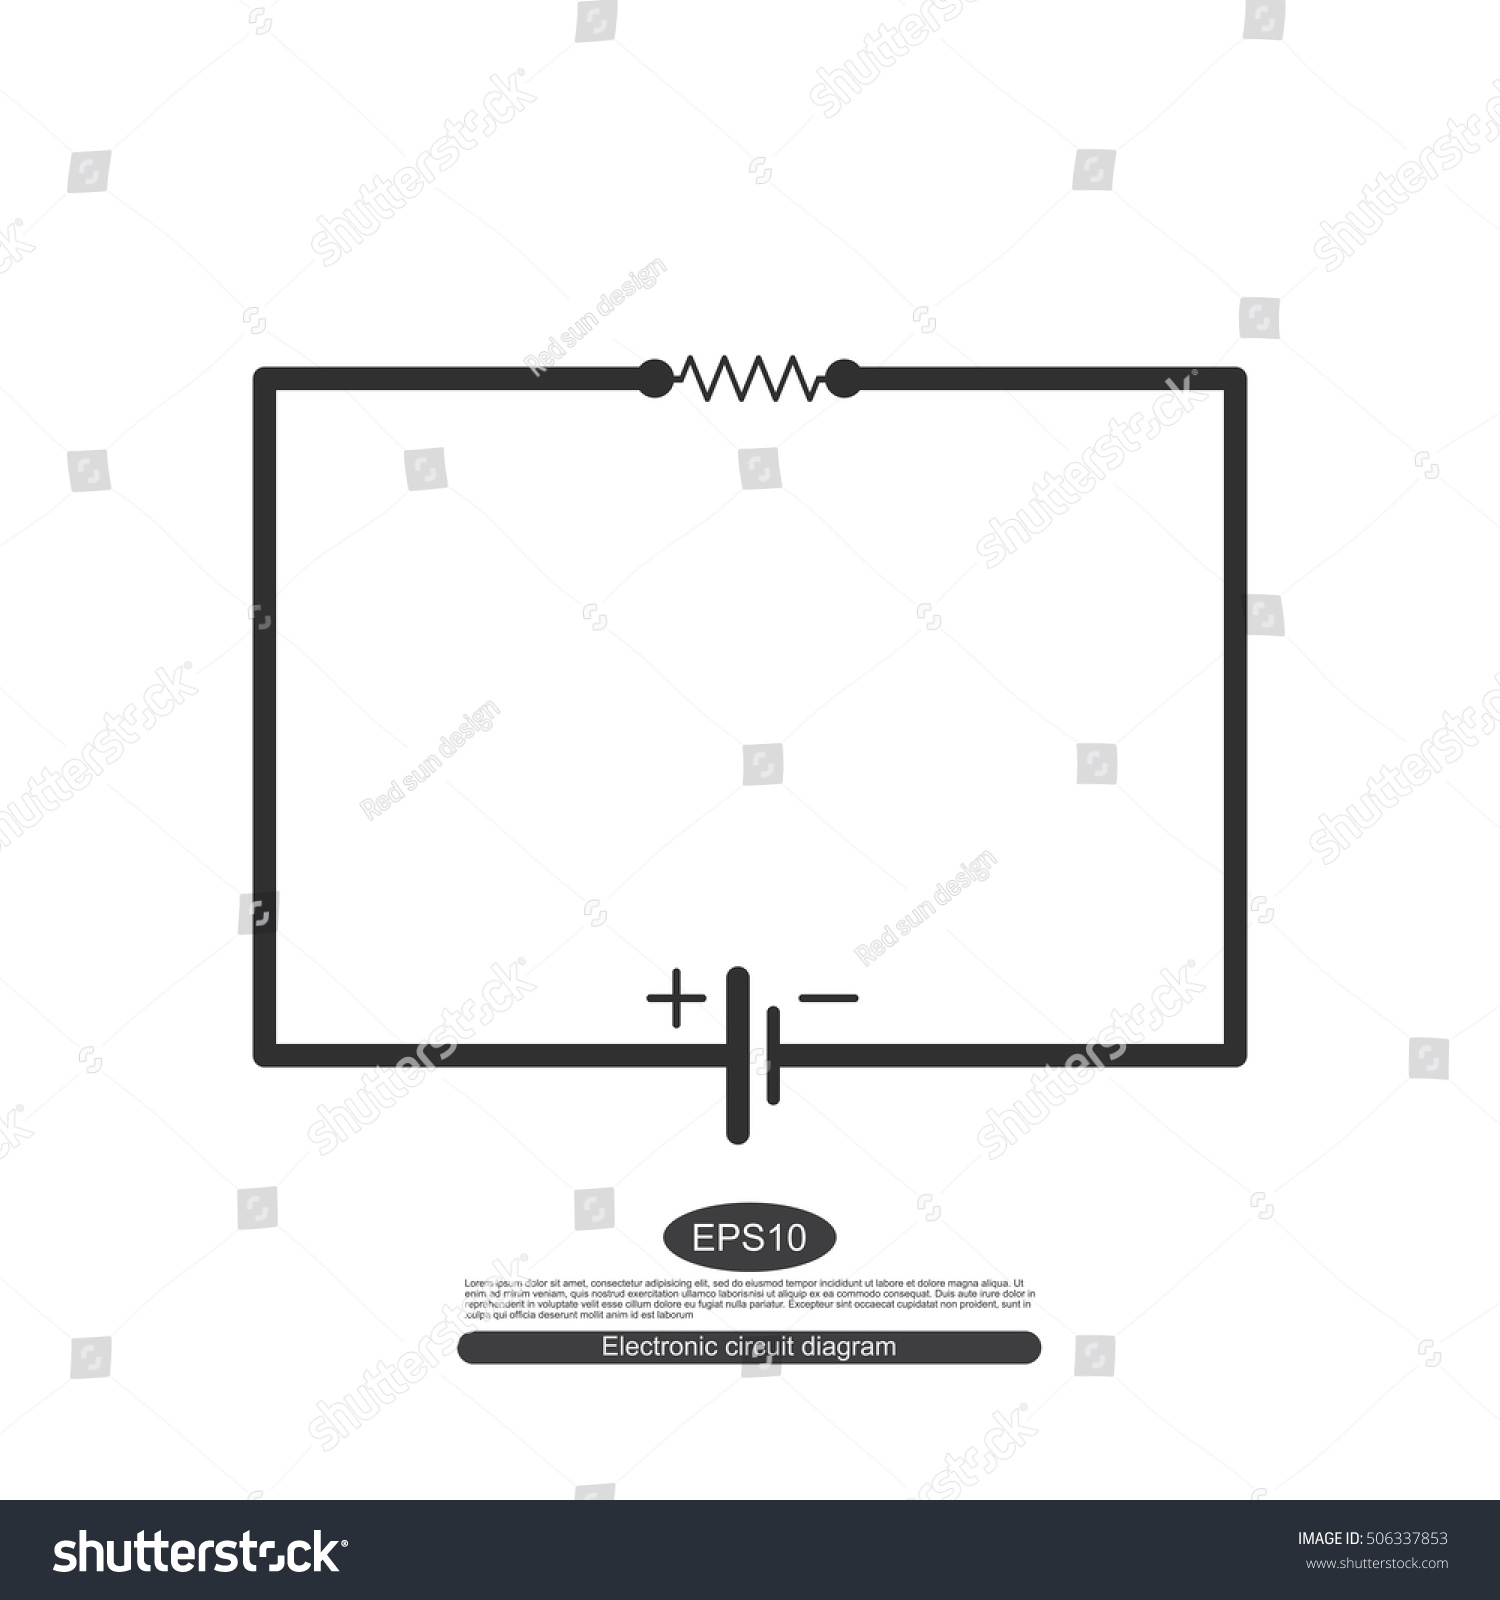 Electronic Symbols Learning Basic Electrical Circuits Stock Vector Of Circuit Design For The Parallel Consists A Source